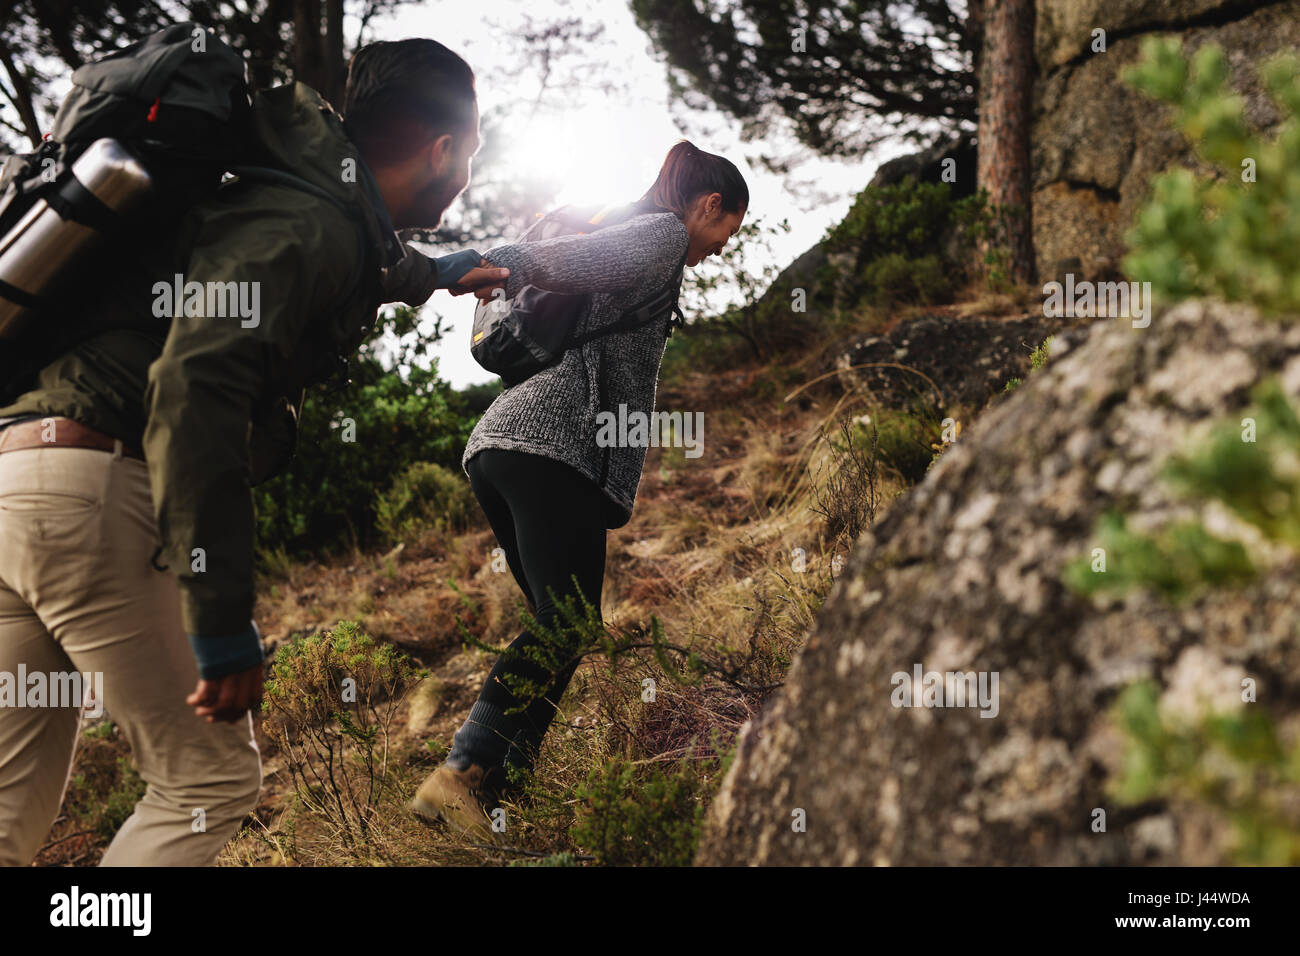 Female hiker helping her boyfriend uphill in the countryside. Young couple hiking in mountain. - Stock Image